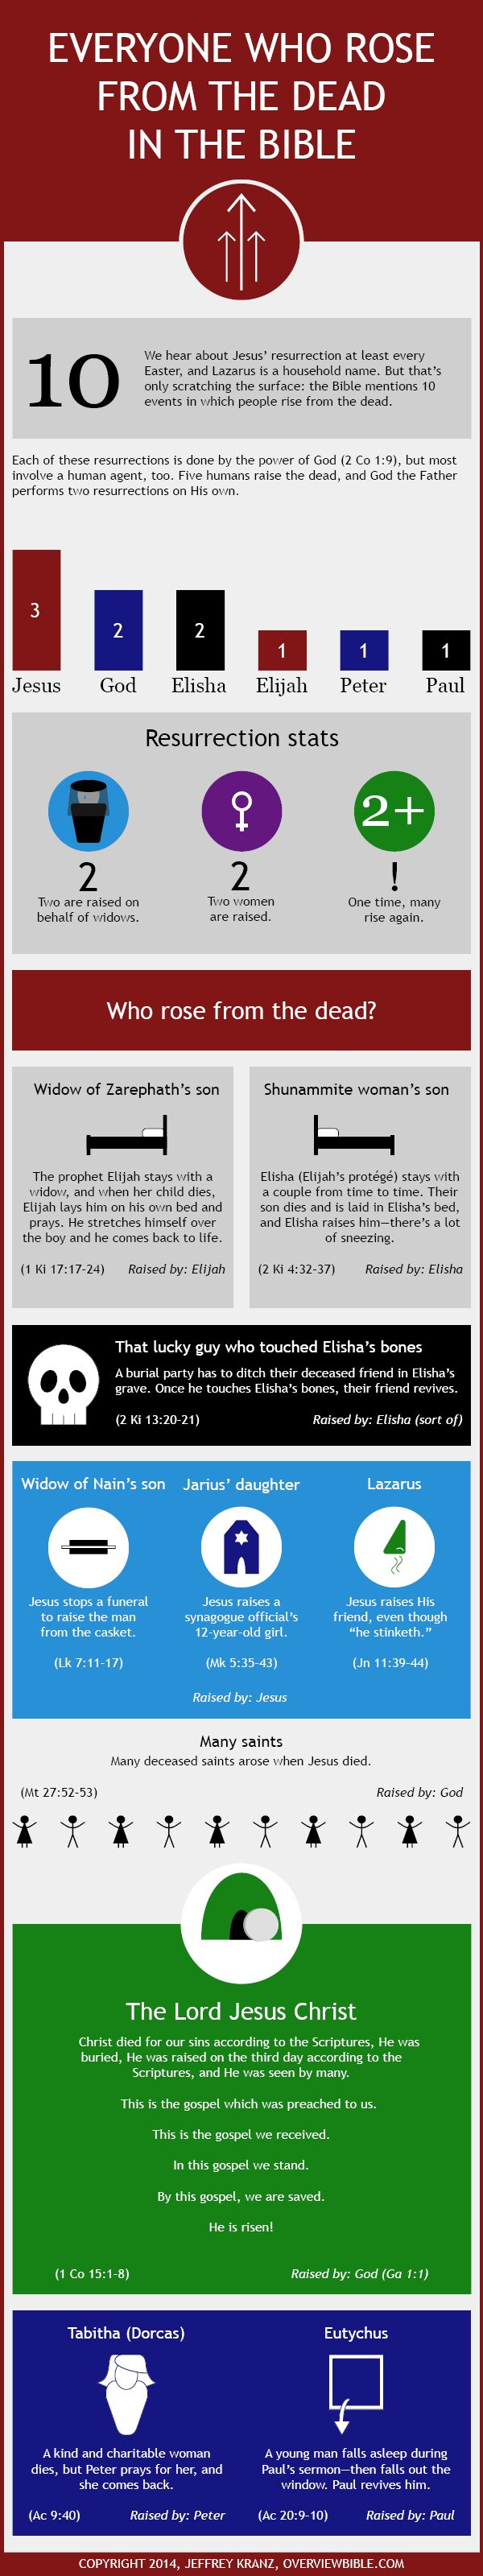 Everyone who rose from the dead in the Bible (infographic)